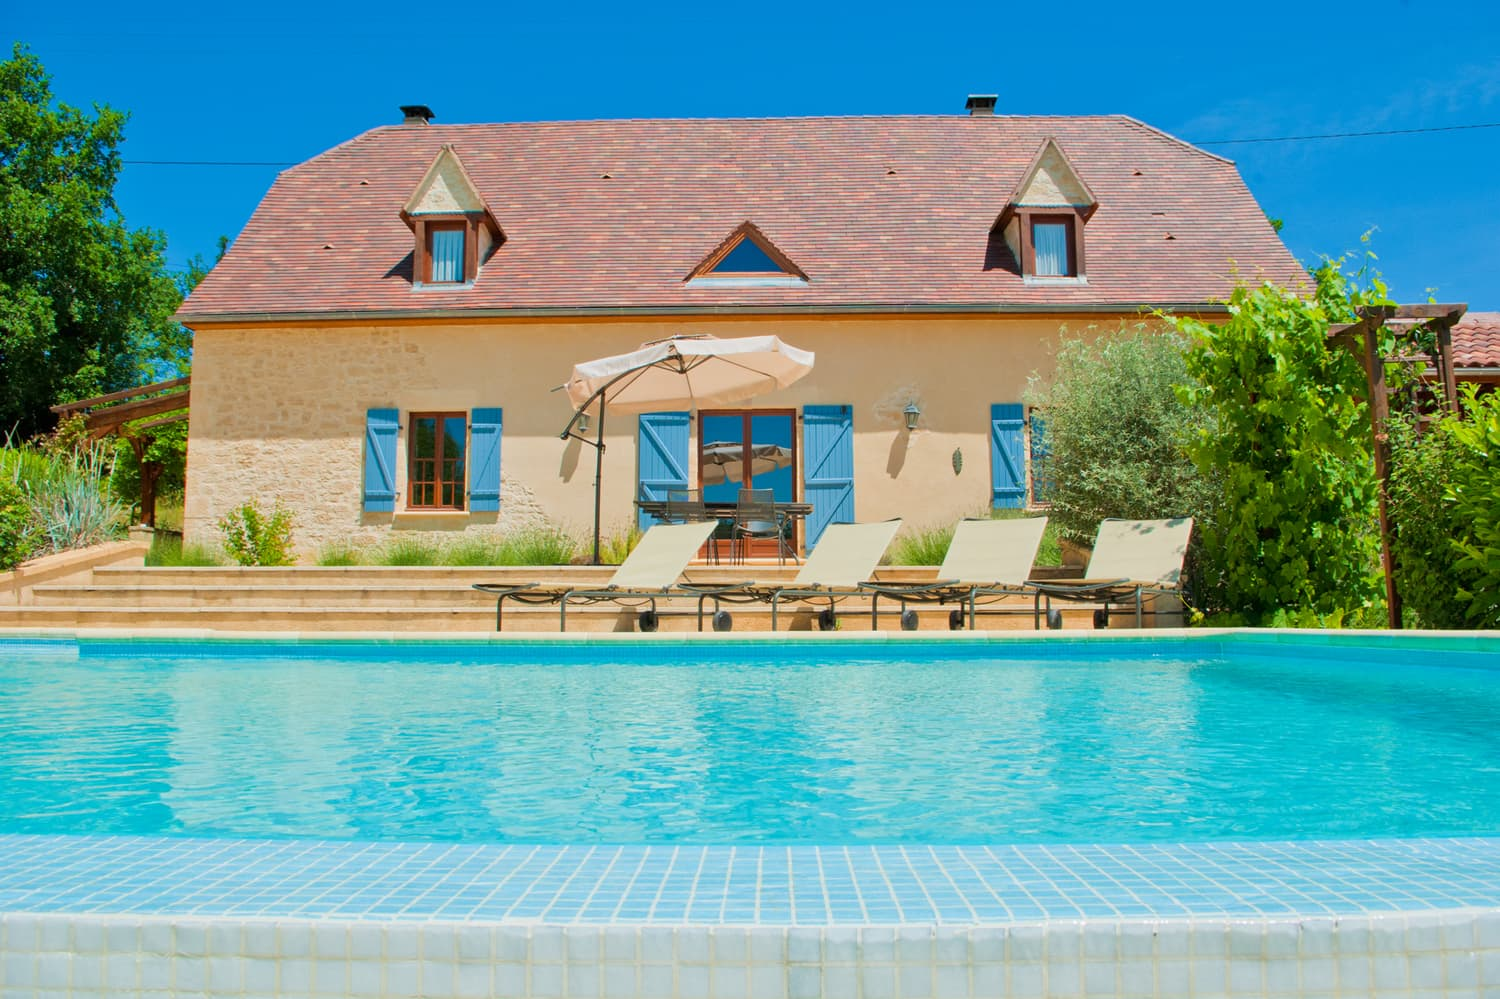 Holiday accommodation in Dordogne with private, heated pool